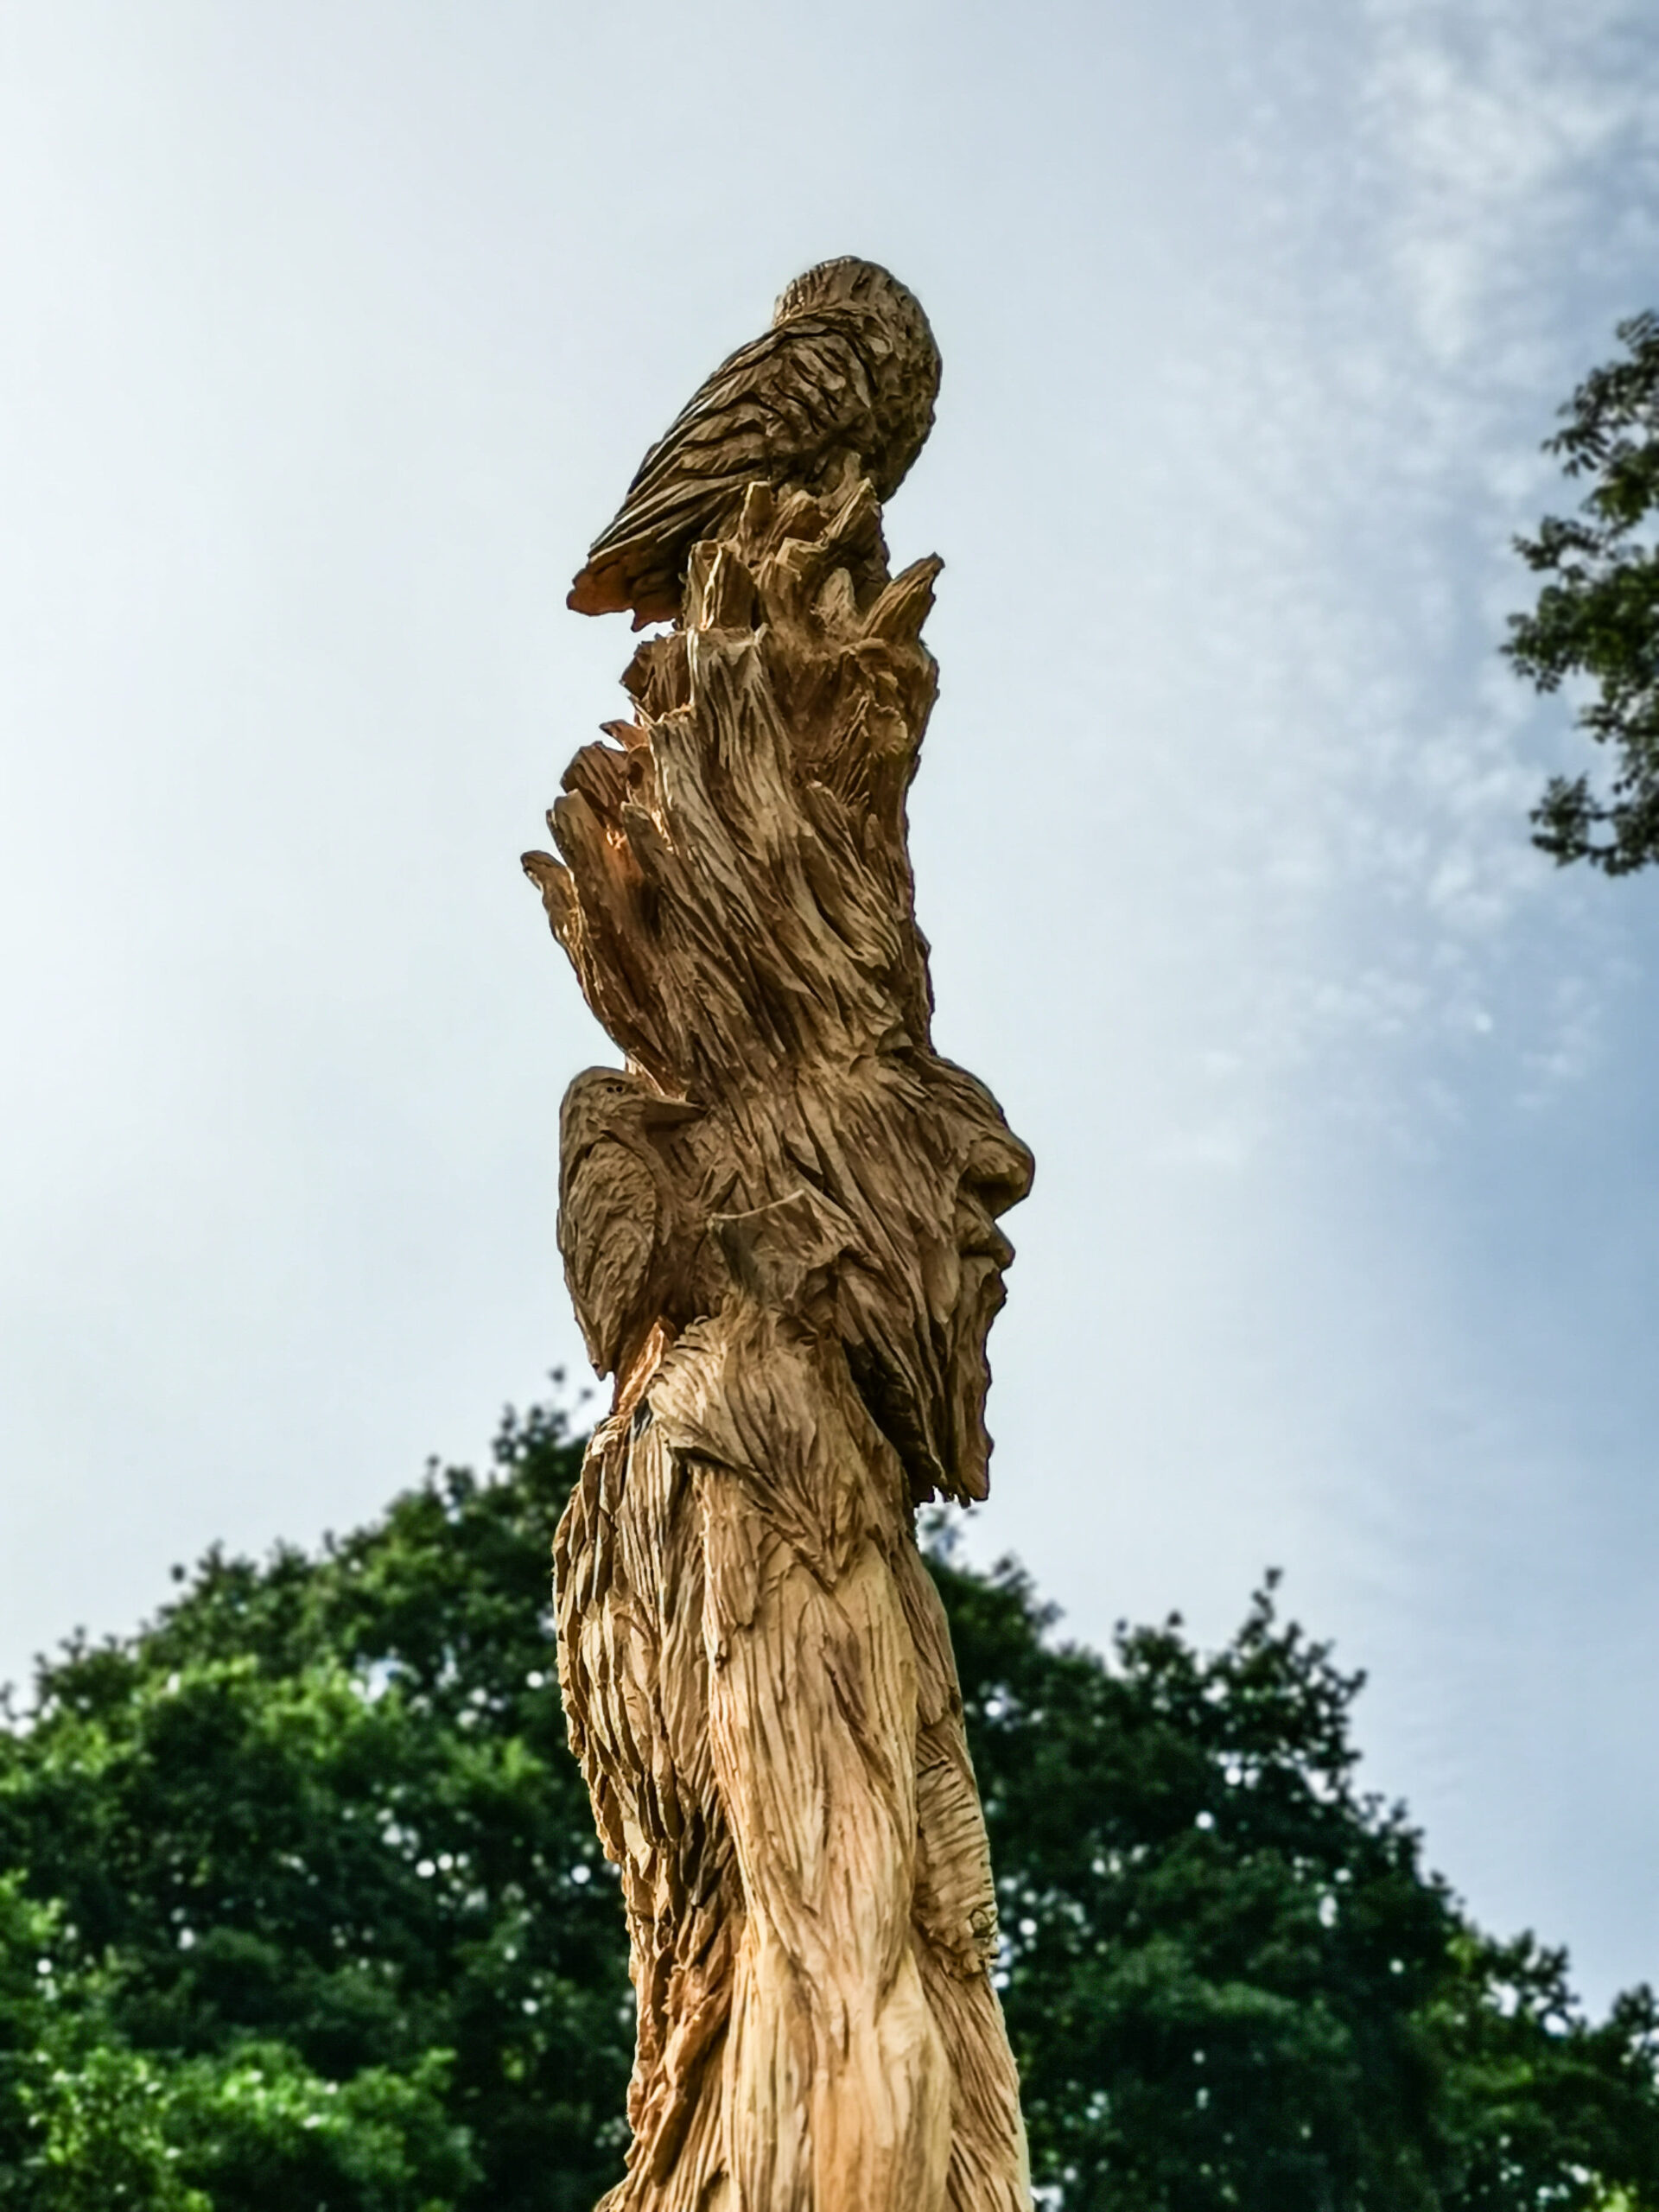 woodpecker and owl in simon o'rourke's ent sculpture